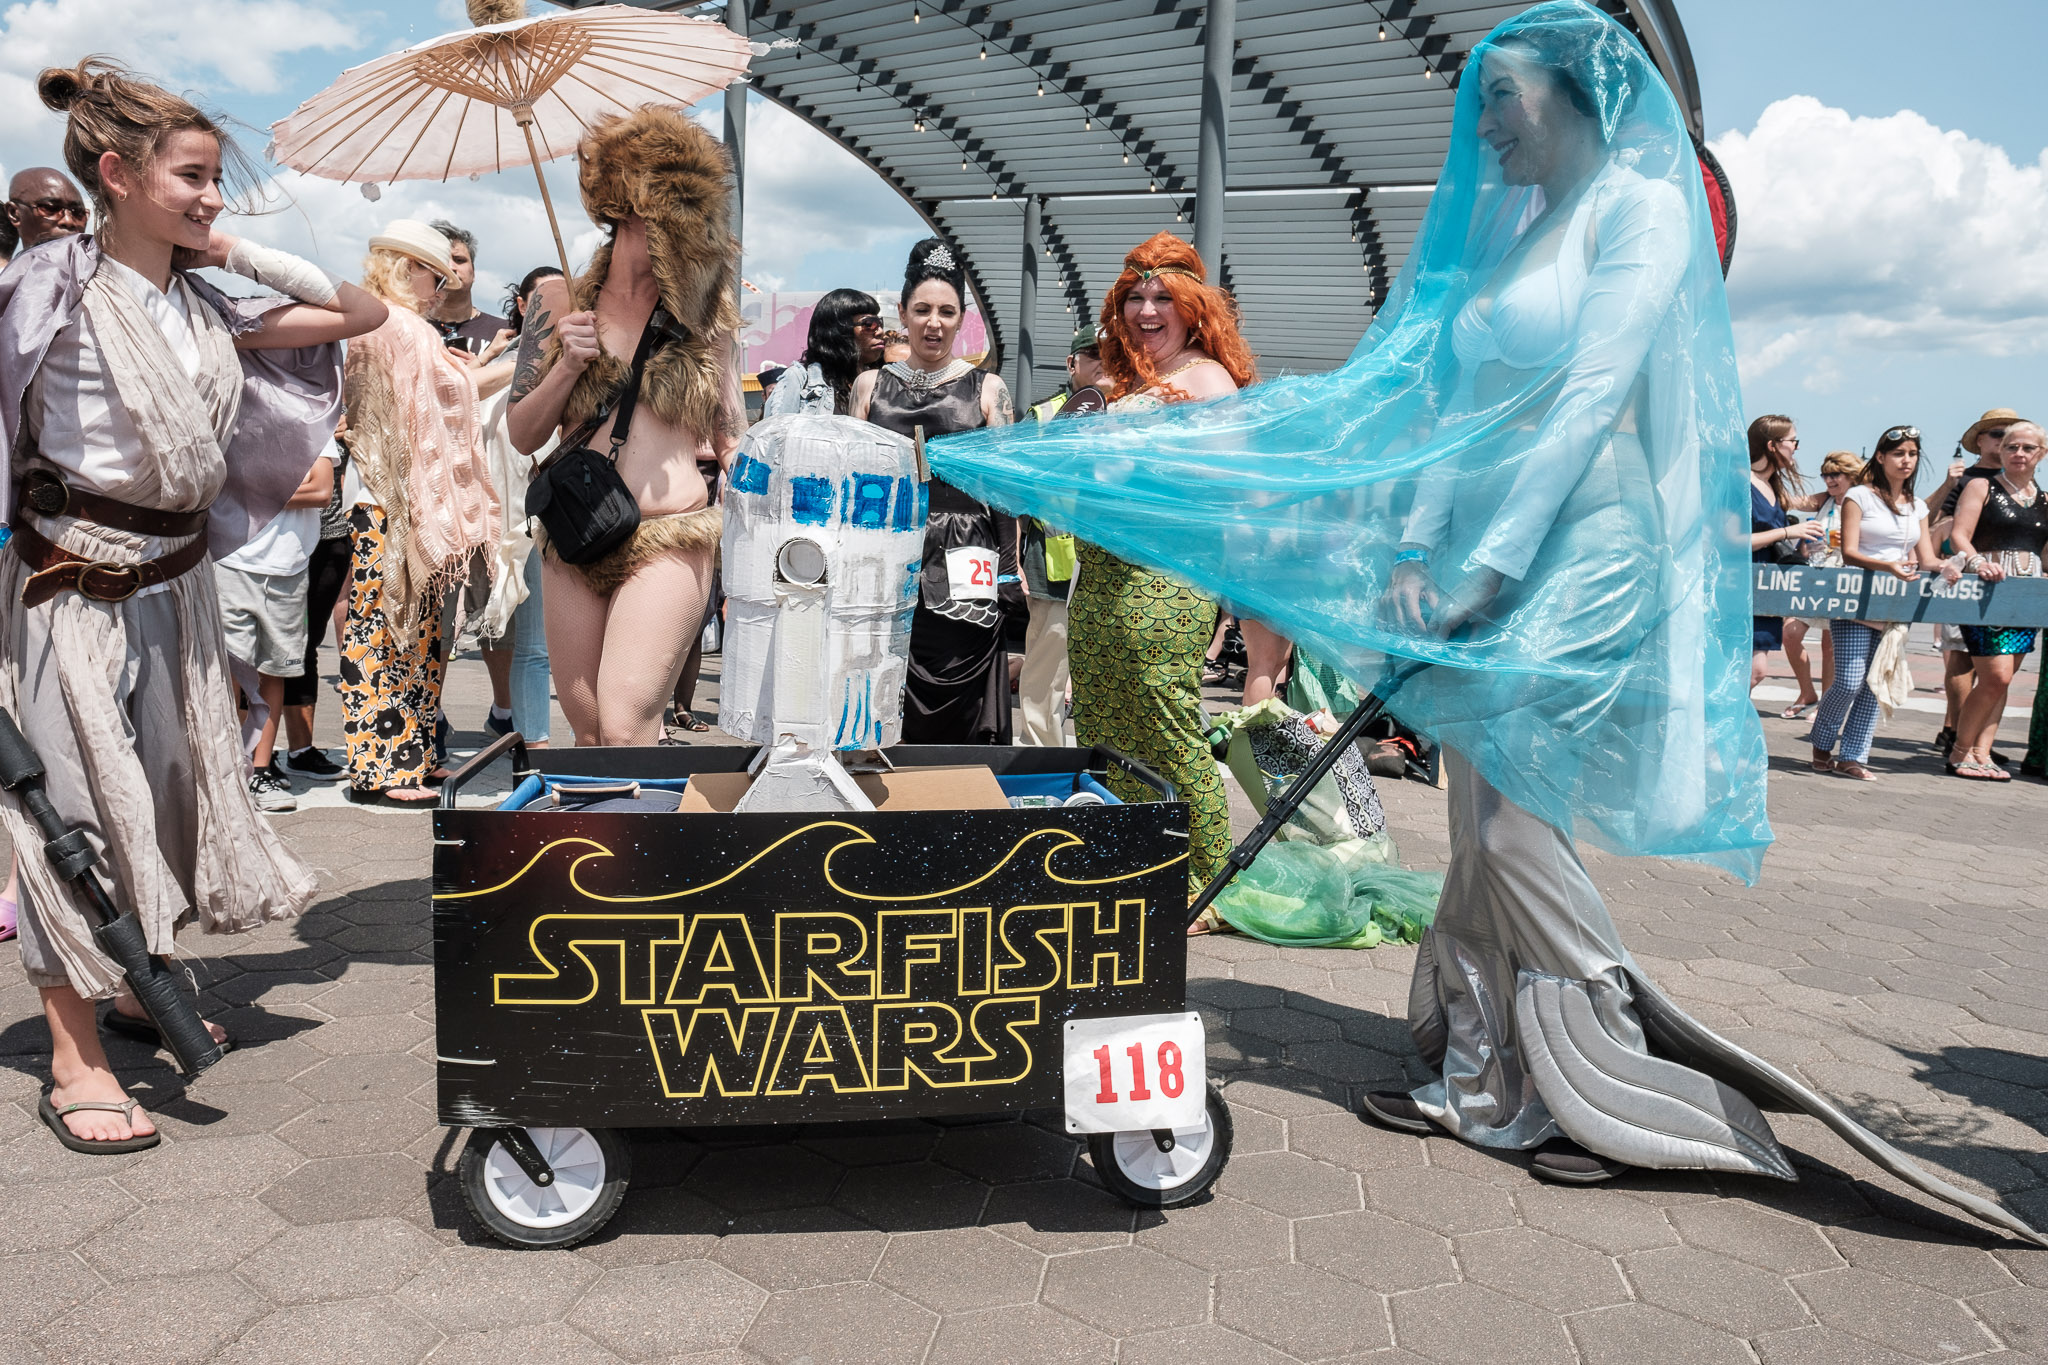 2019_mermaid_parade_009.jpg